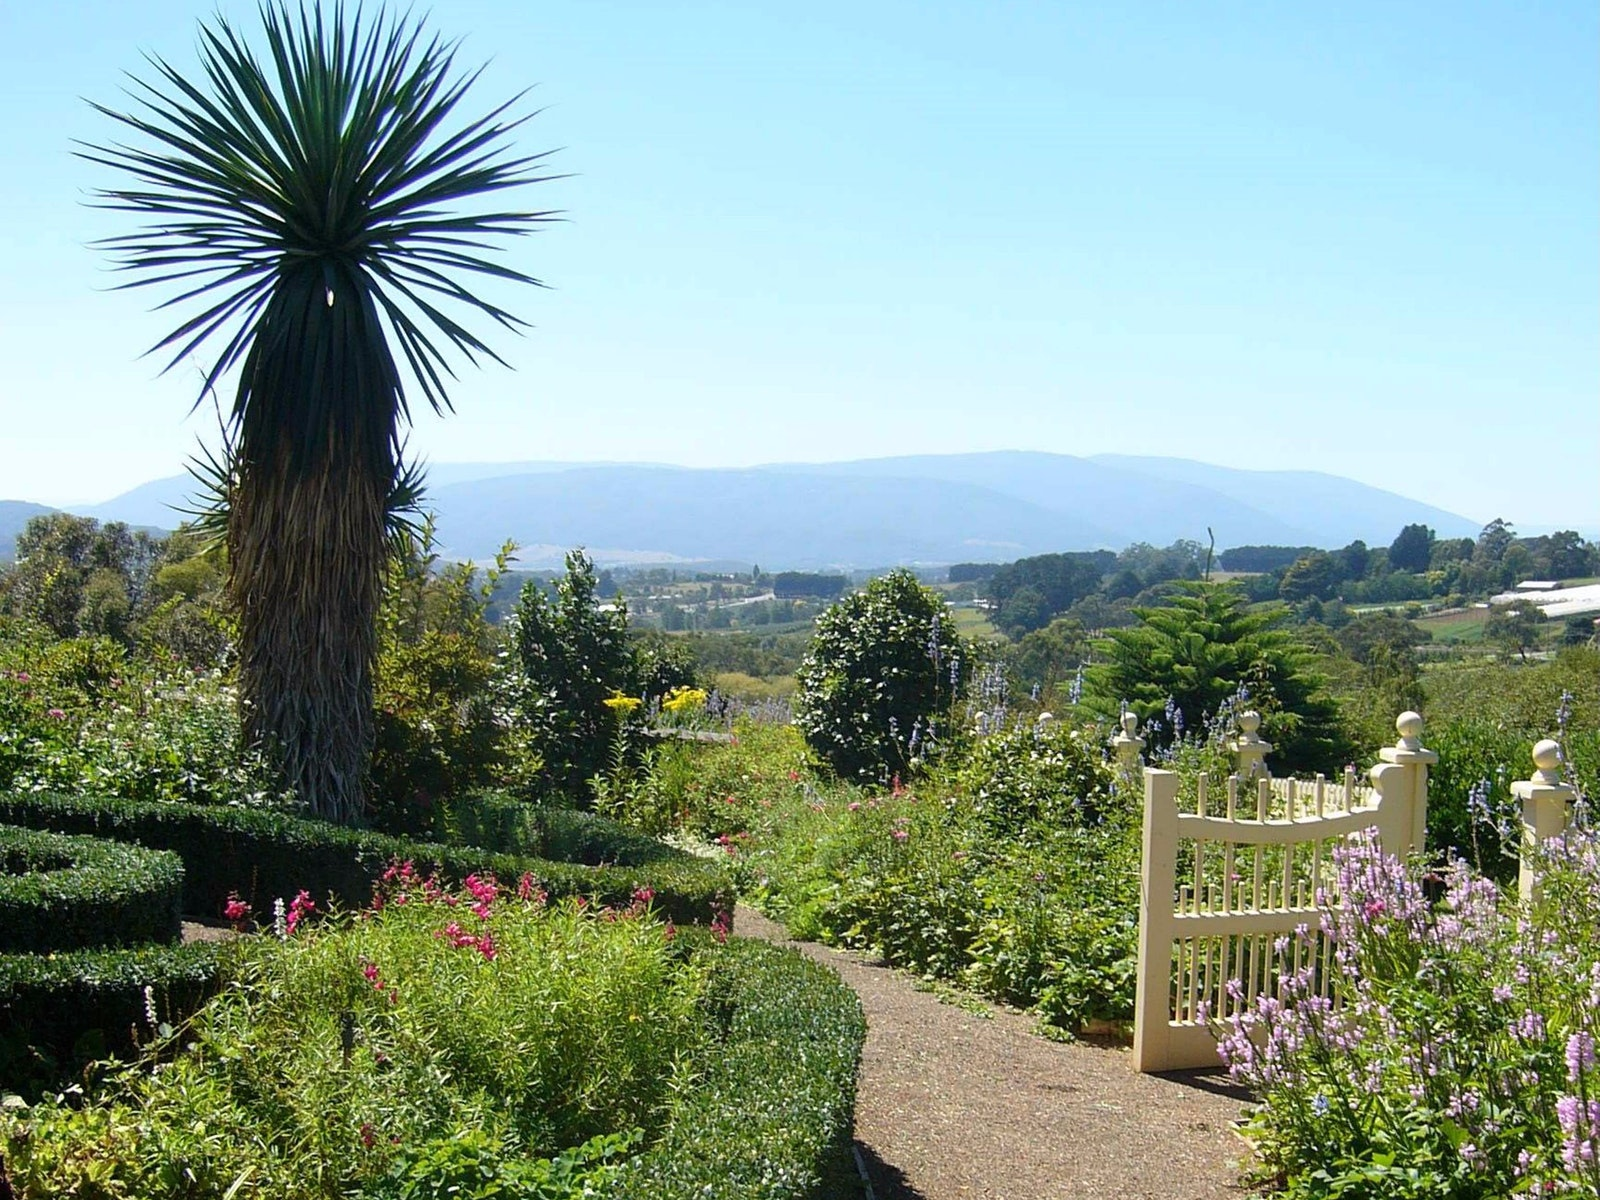 Views of the garden towards the mountains further up the Yarra Valley